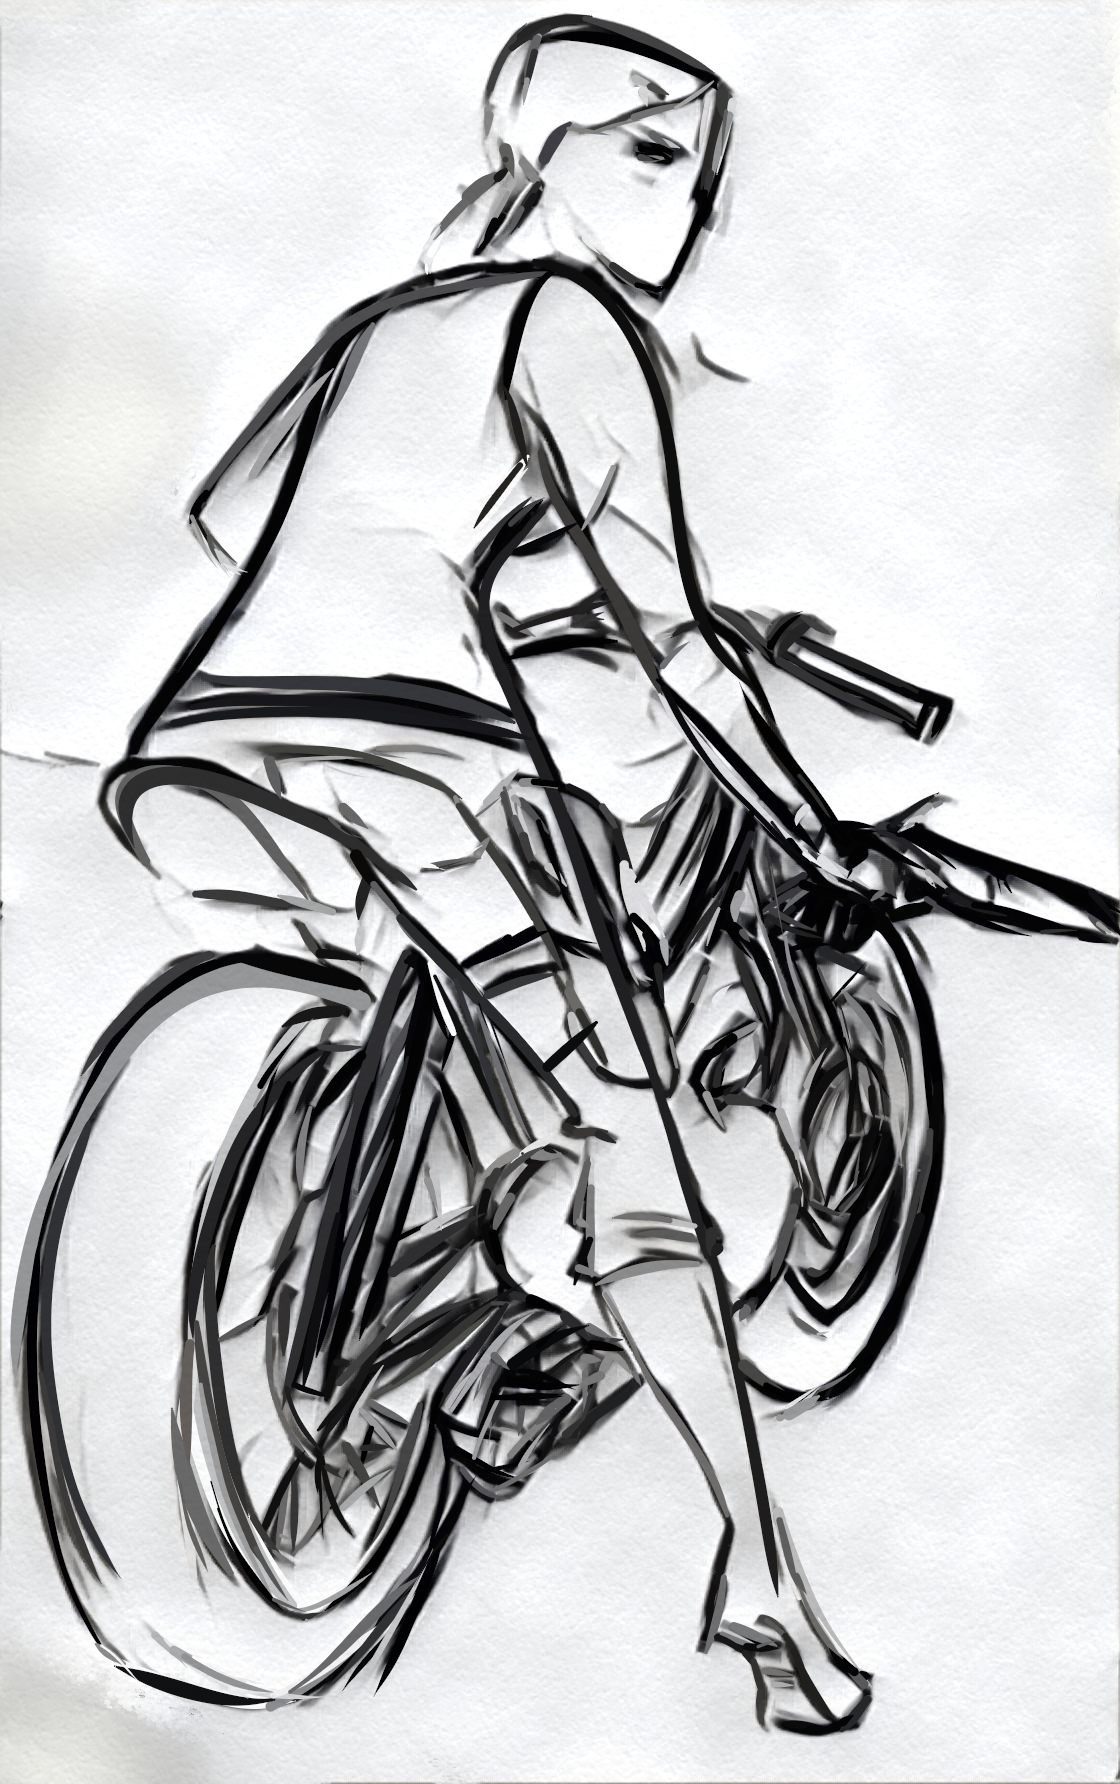 image of sketch biker woman